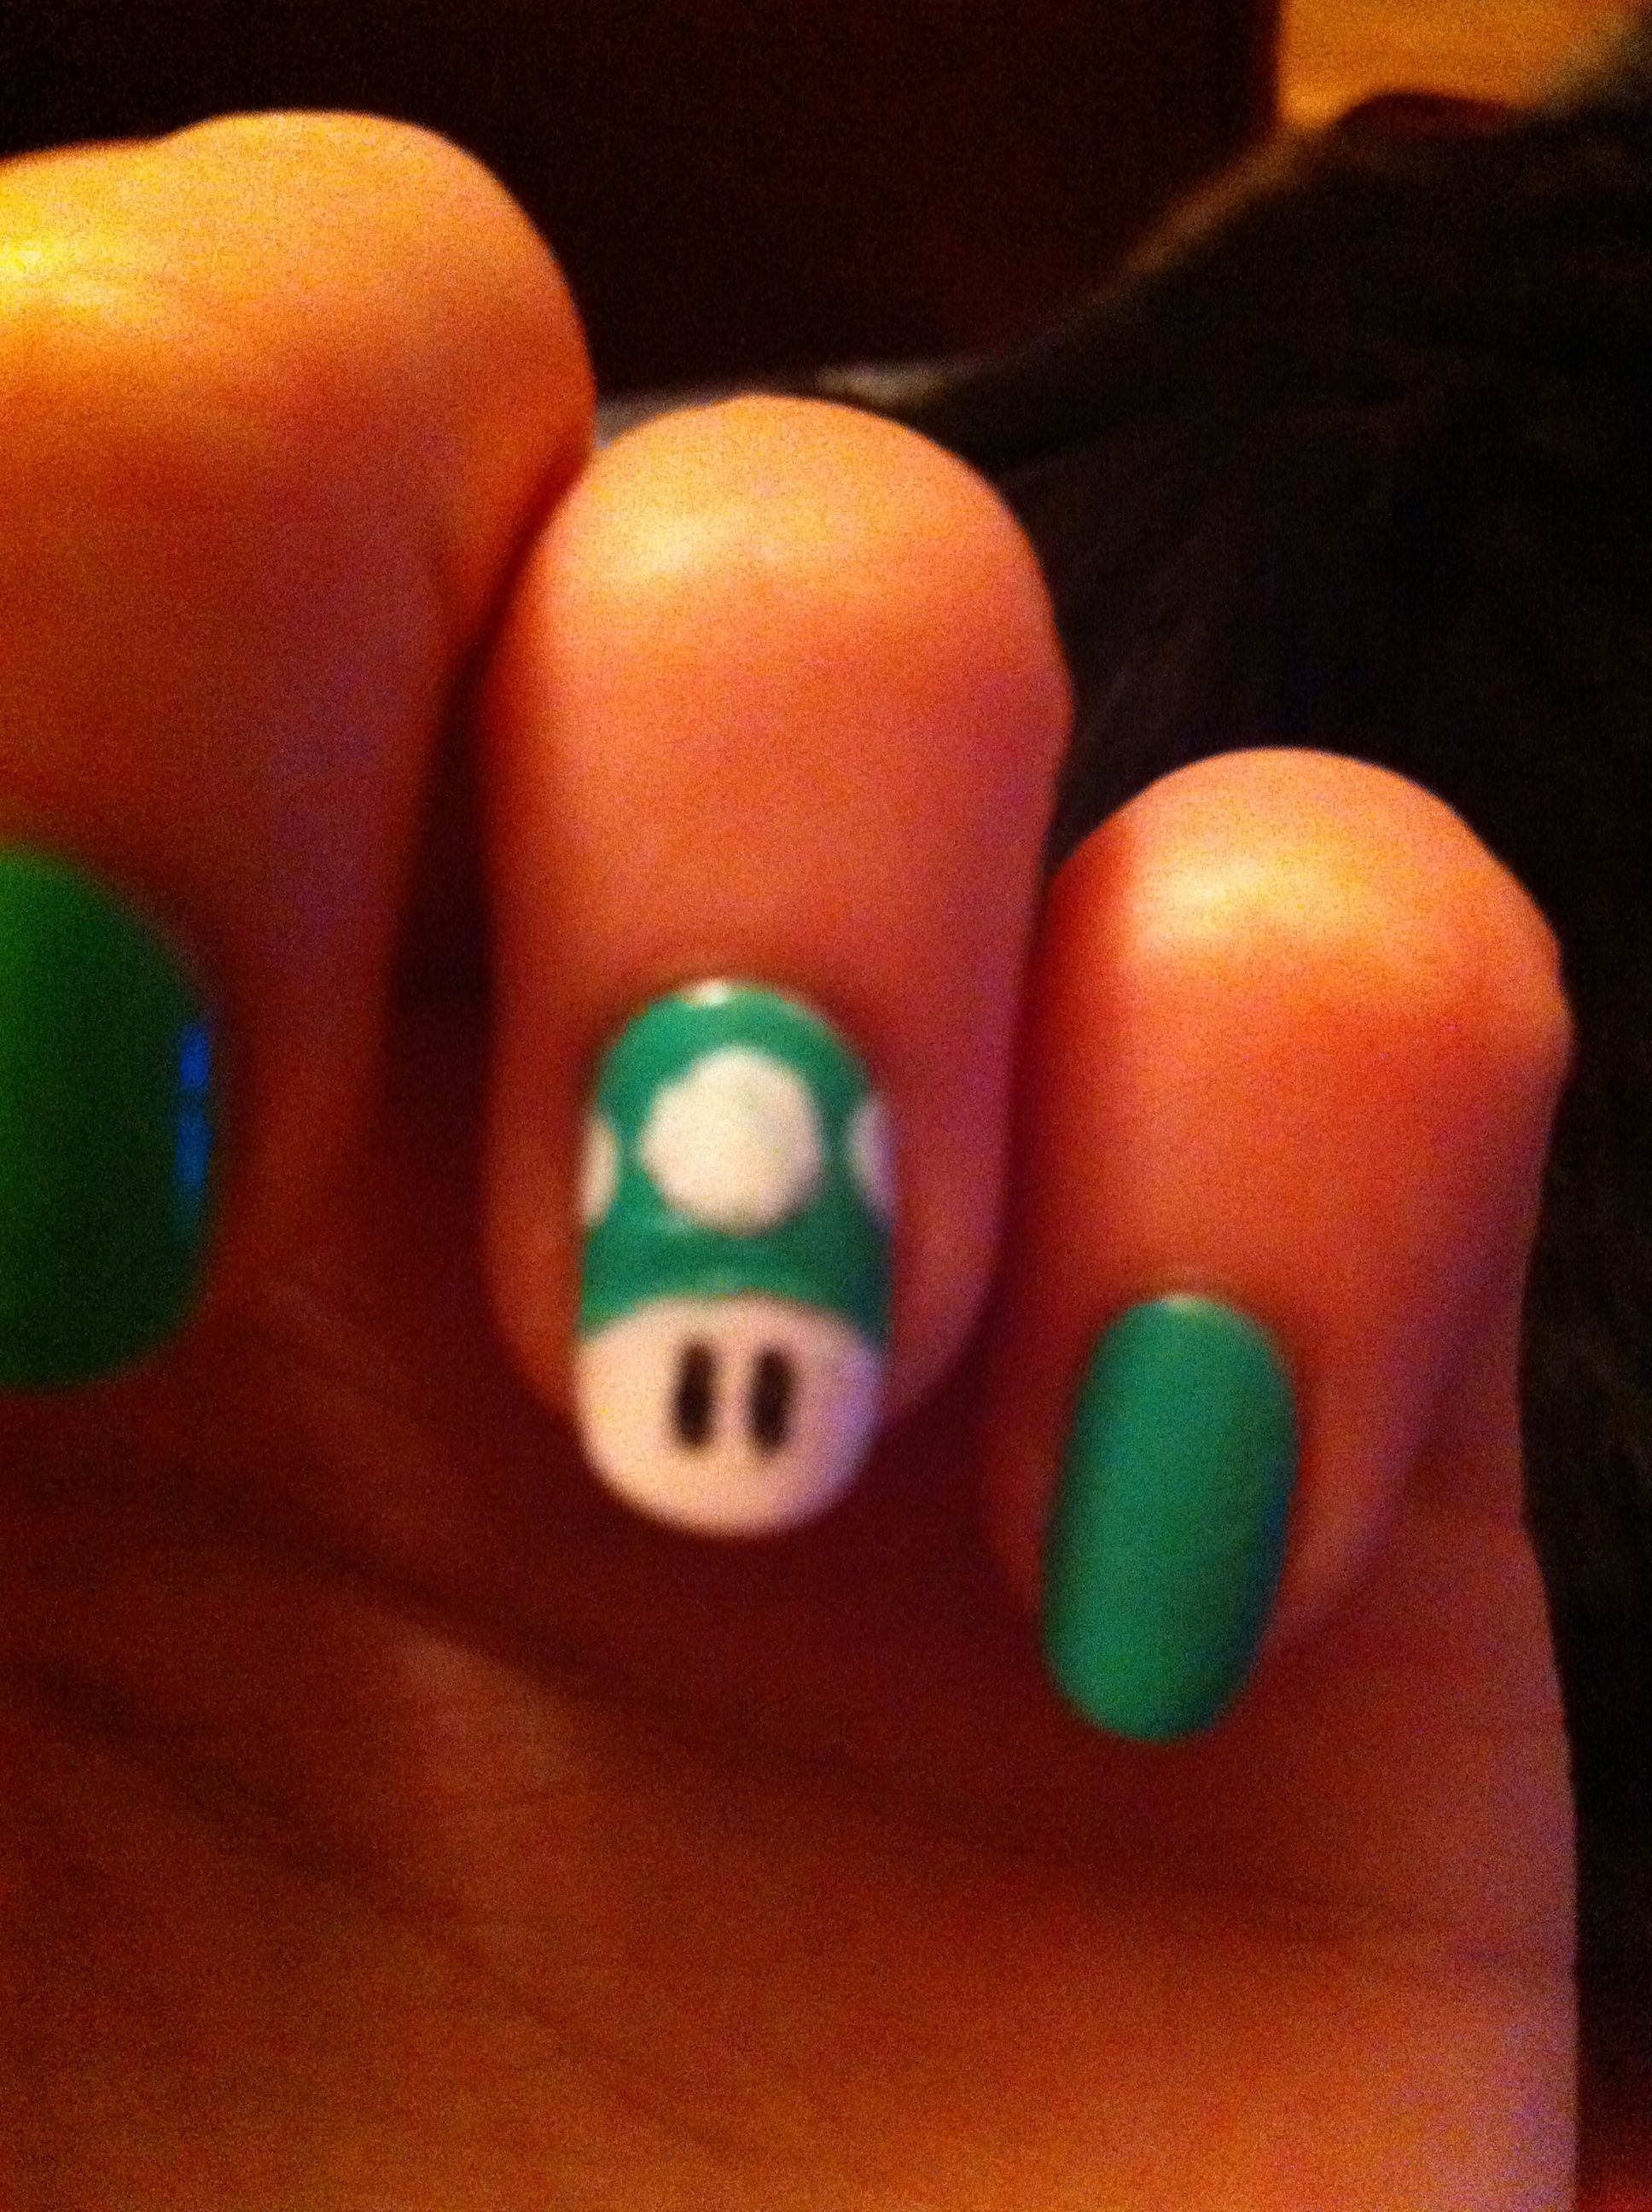 Super Mario nail art - toad :) - Perfectly Polished | Pinterest